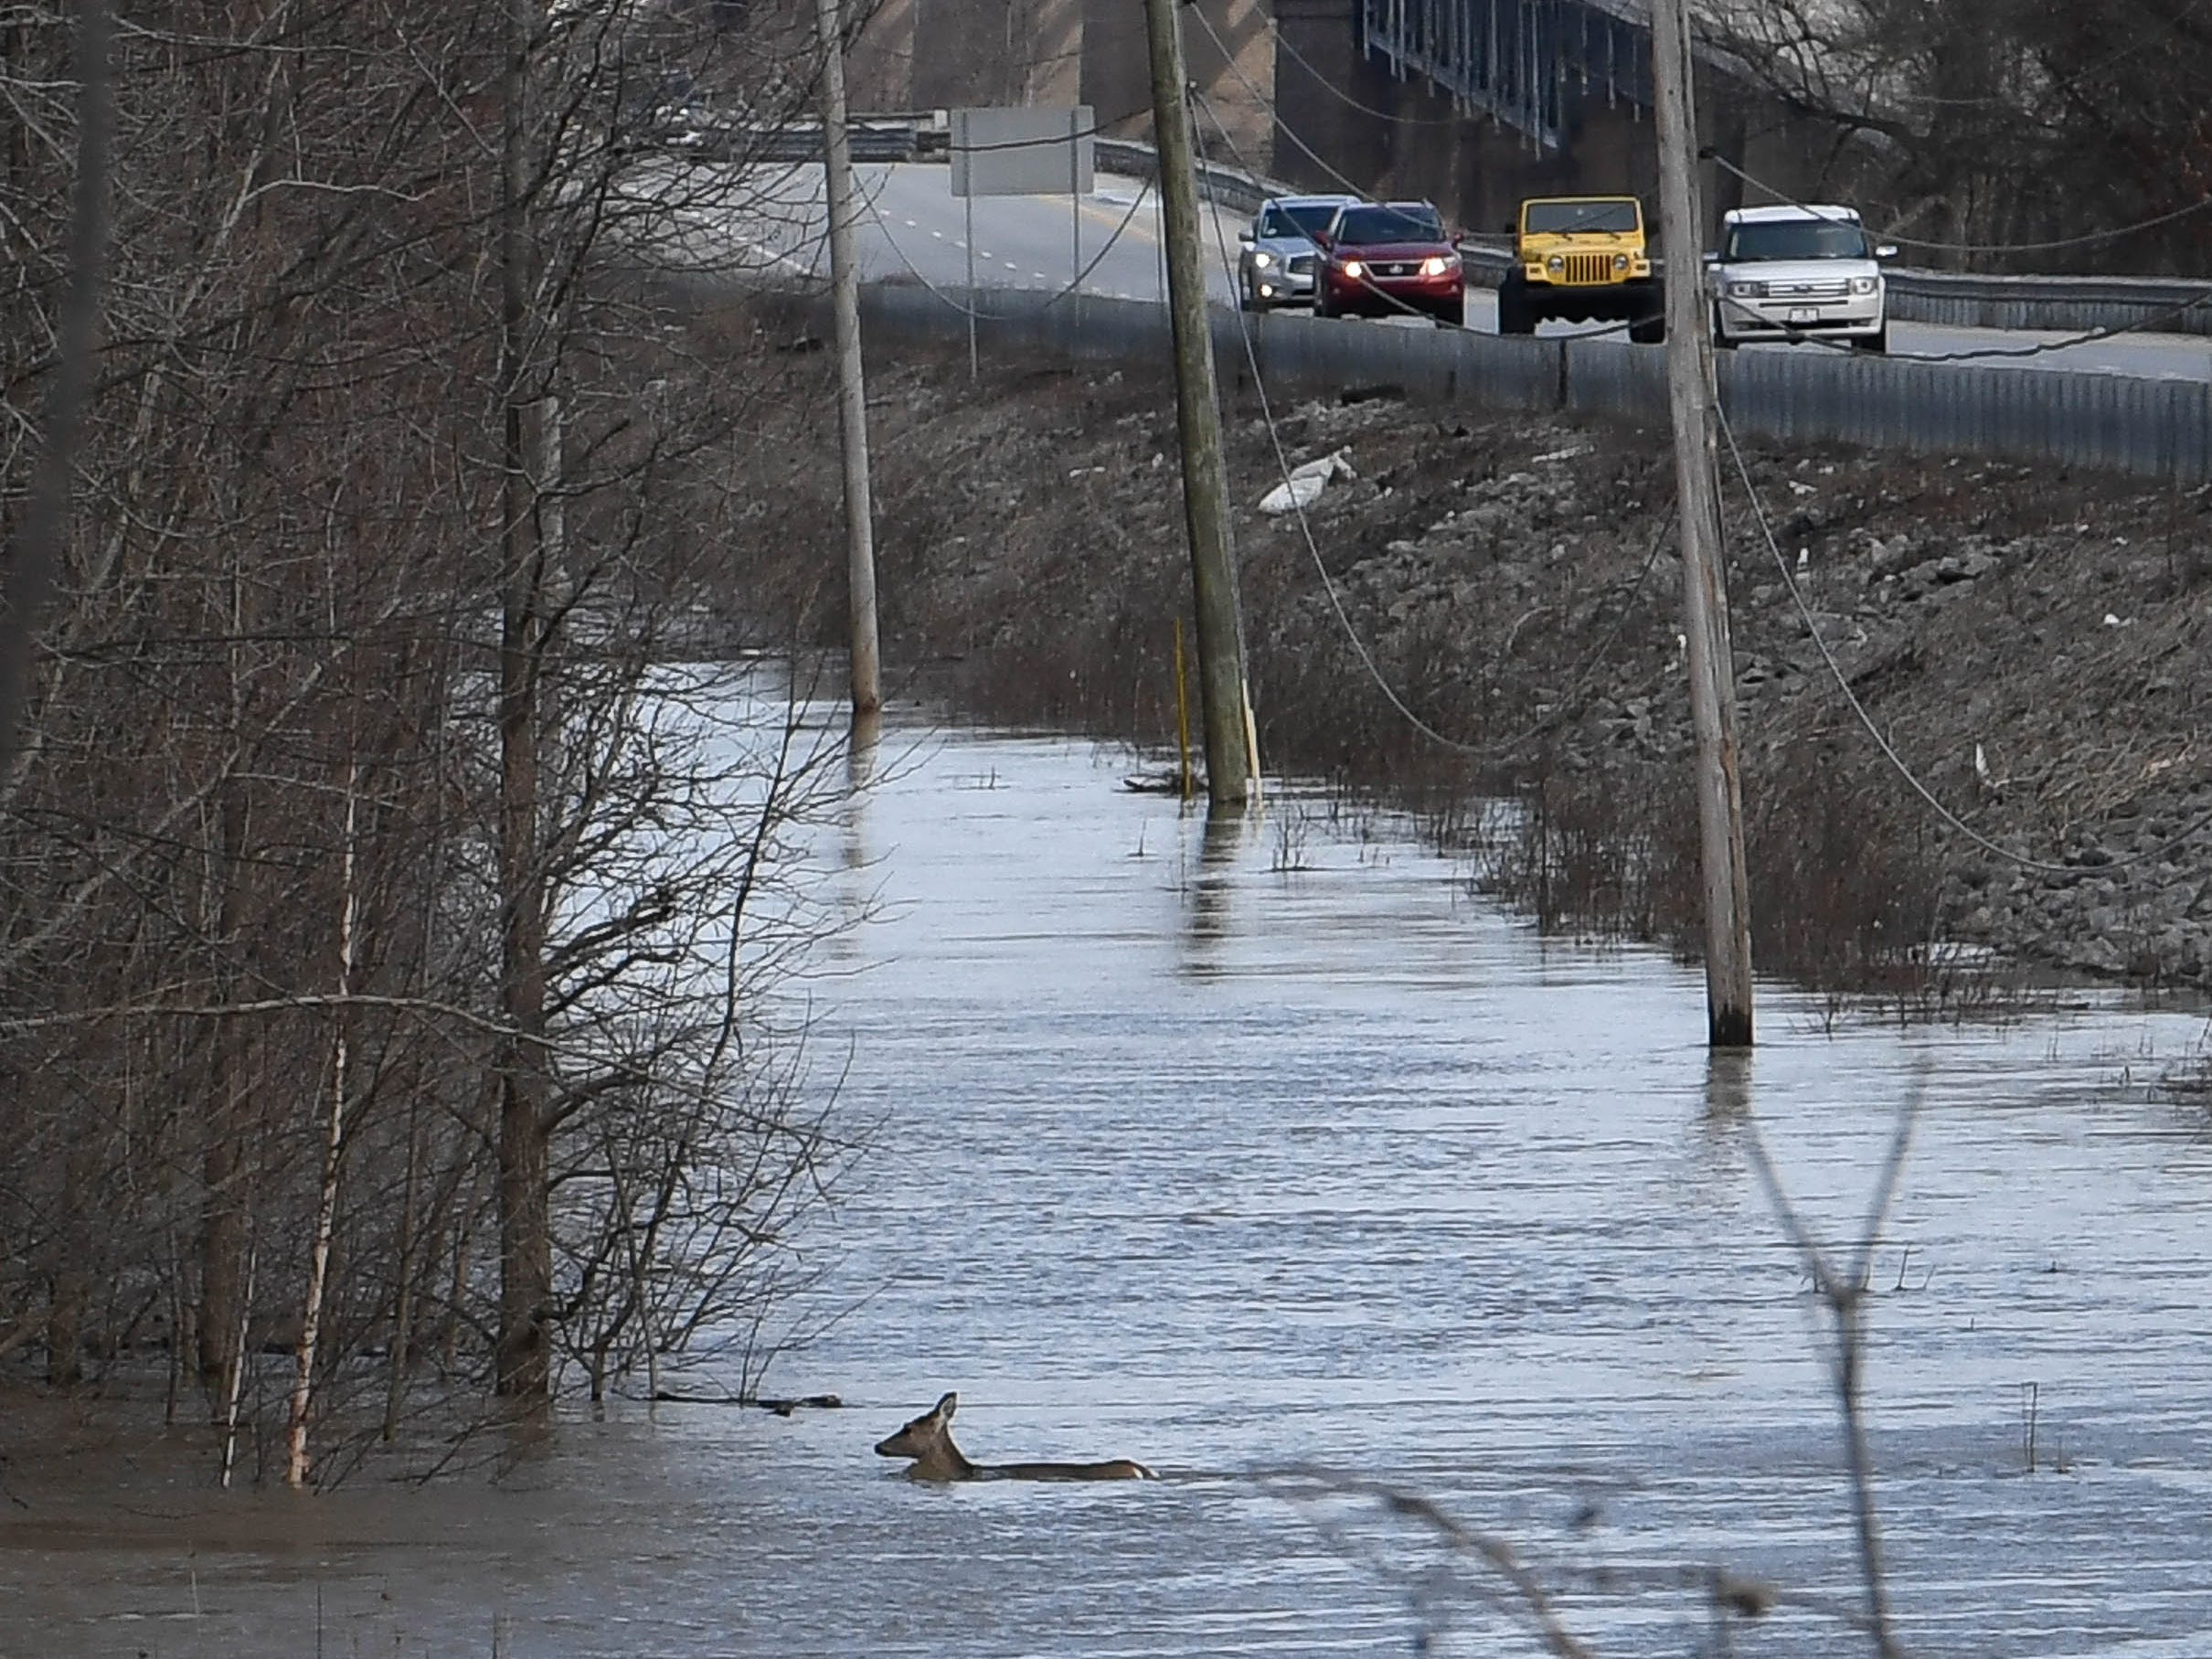 Deer swims in the flood waters beside the southbound U.S. 41 near the twin bridges as high water forces them out of their river-bottom habitat Thursday, February 14, 2019.